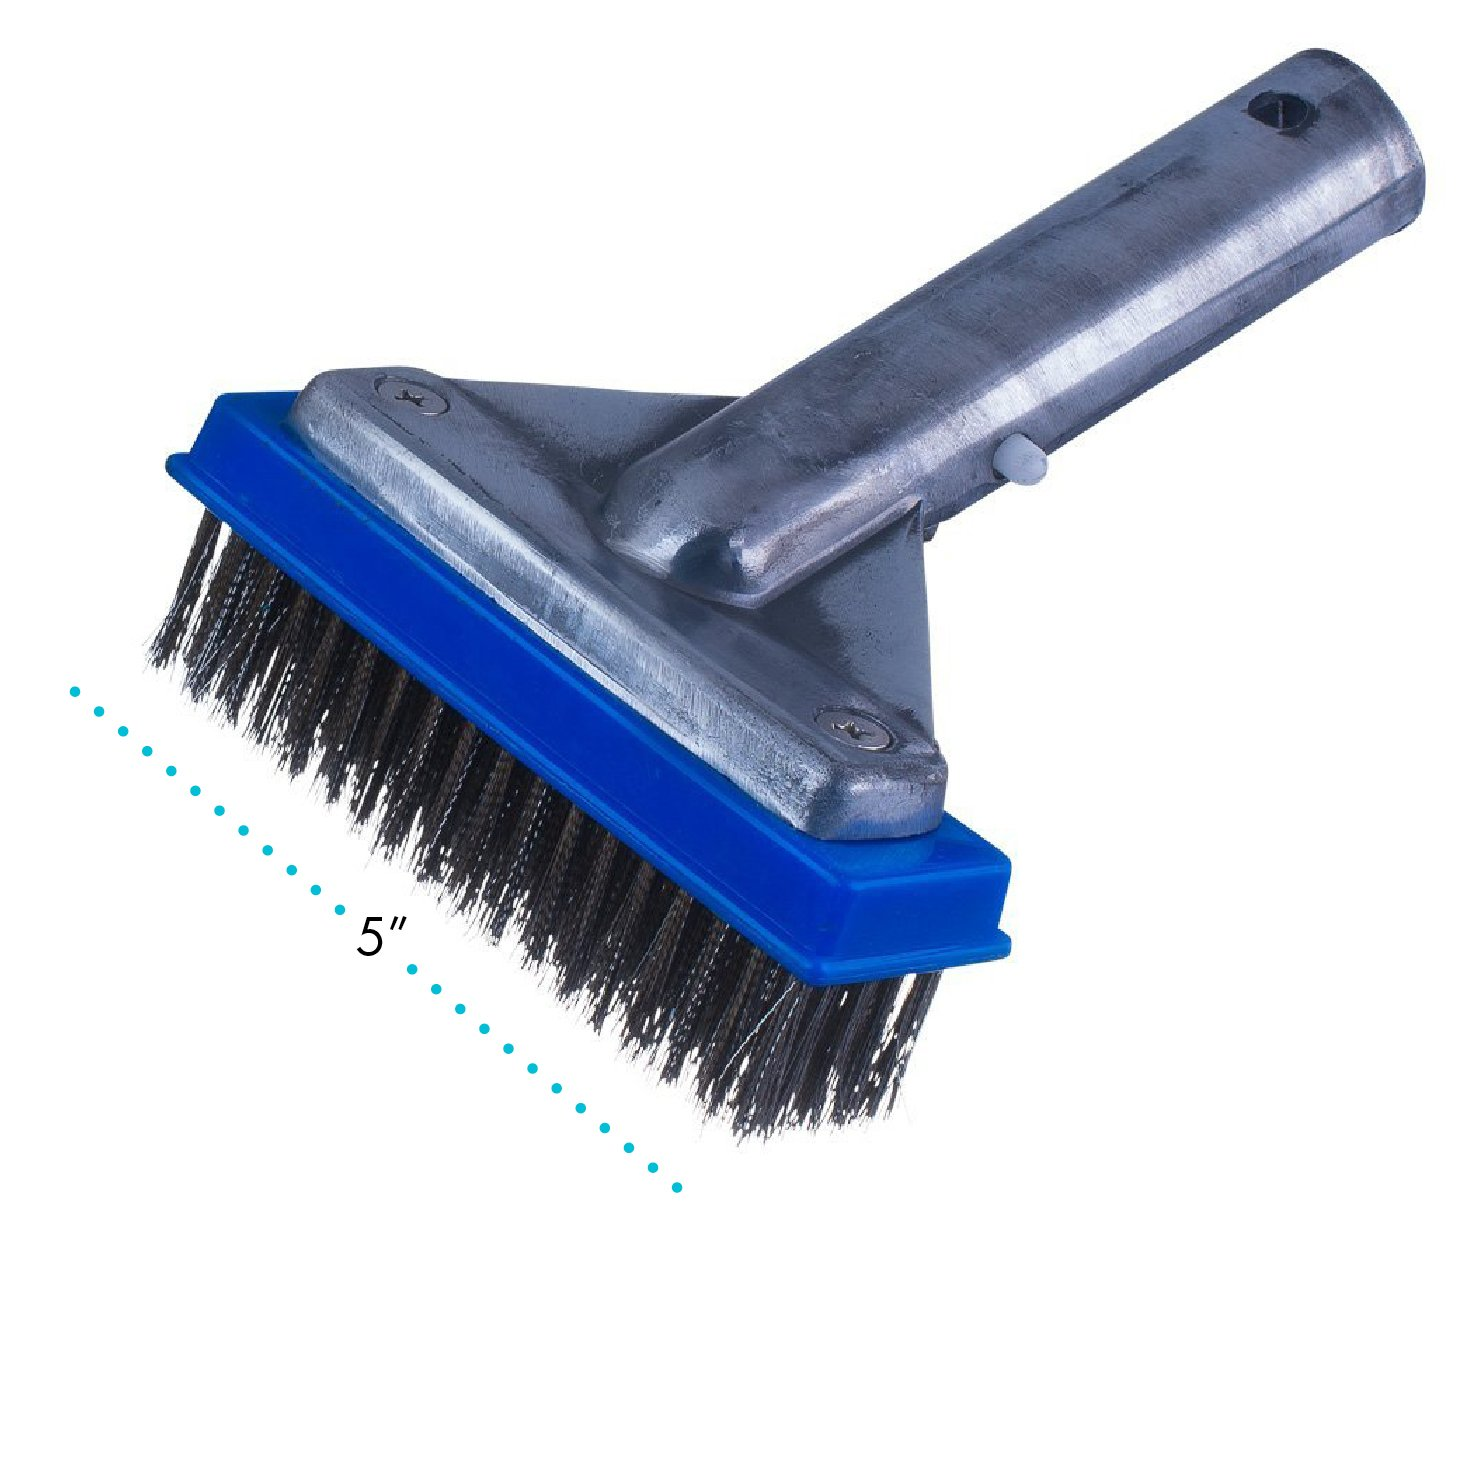 Milliard 5'' Heavy Duty Wire Pool Algae Brush, Designed for Concrete and Gunite Pools Great on Extremely Tough Stains